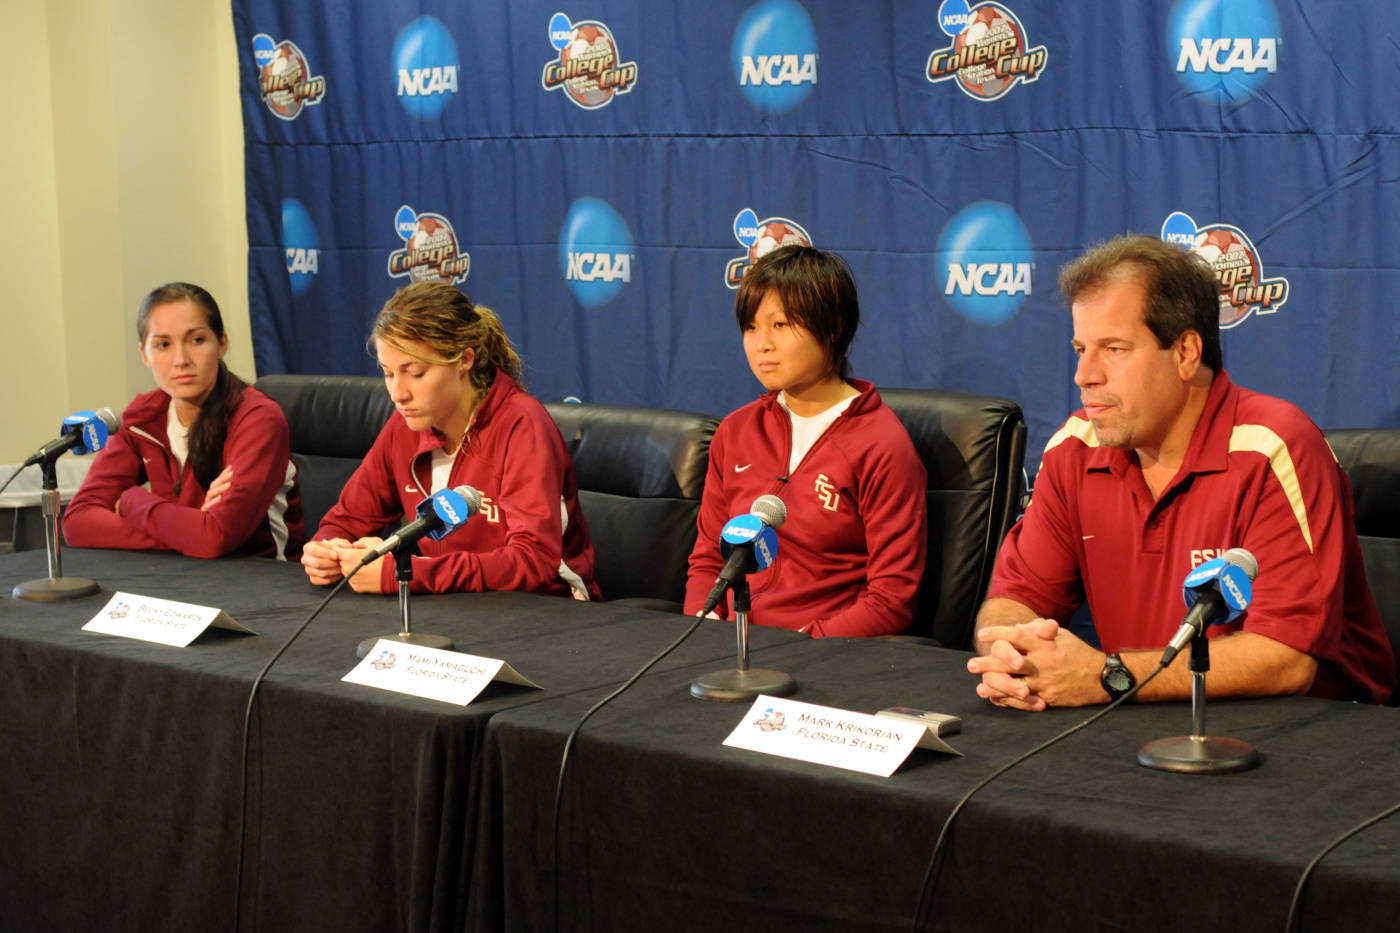 From L to R: Libby Gianeskis, Becky Edwards, Mami Yamaguchi and head coach Mark Krikorian participate in the pre-tournament press conference at the College Cup.